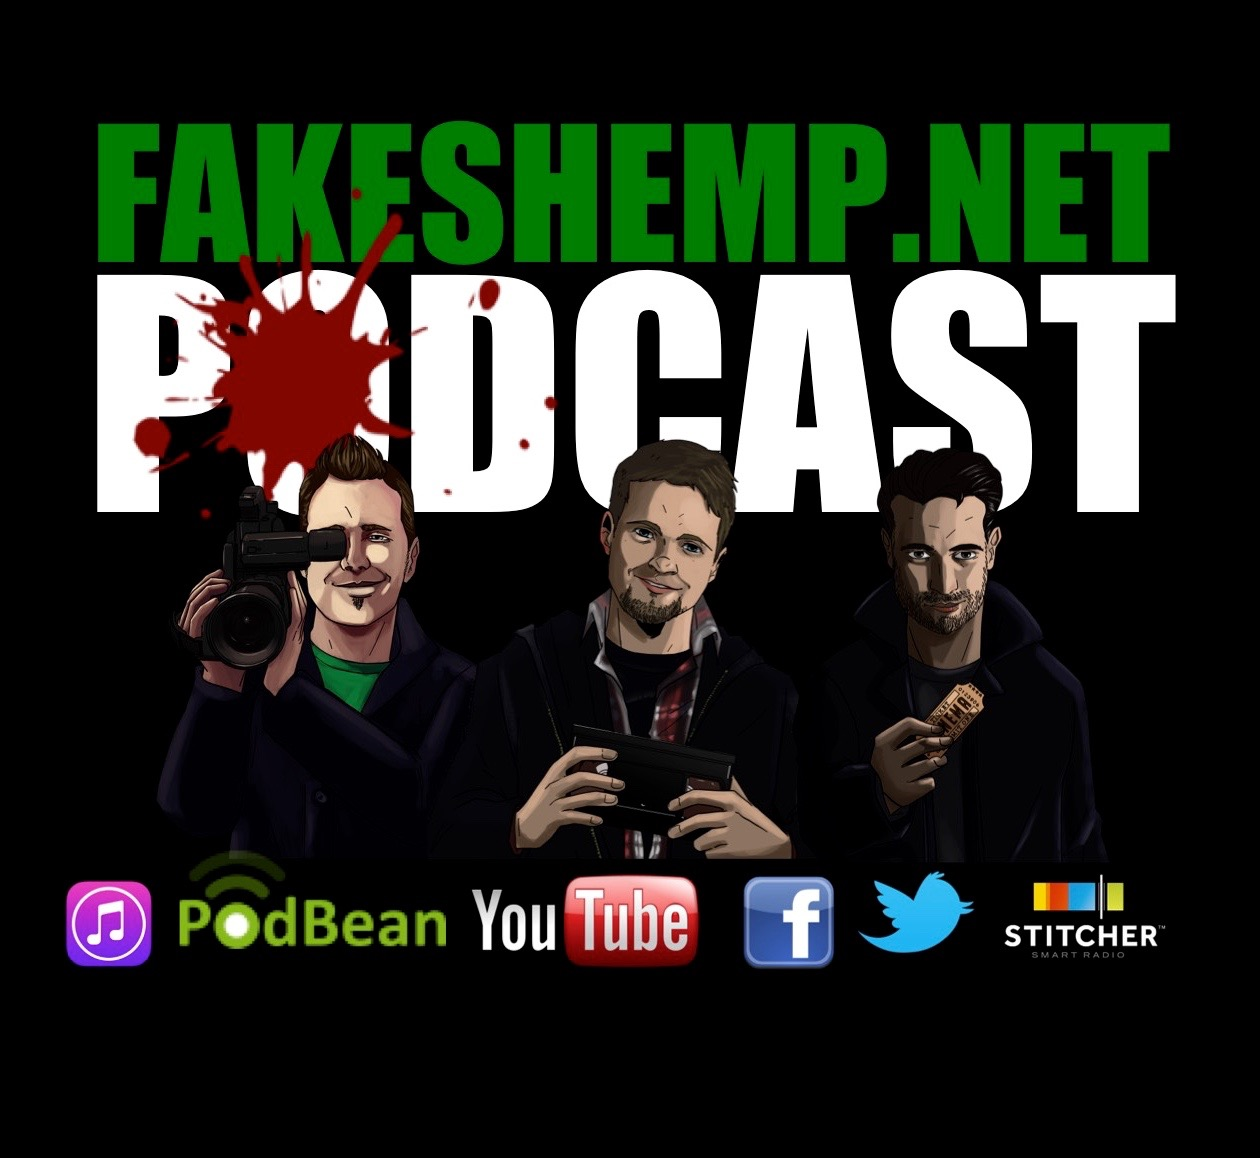 FAKESHEMP.NET